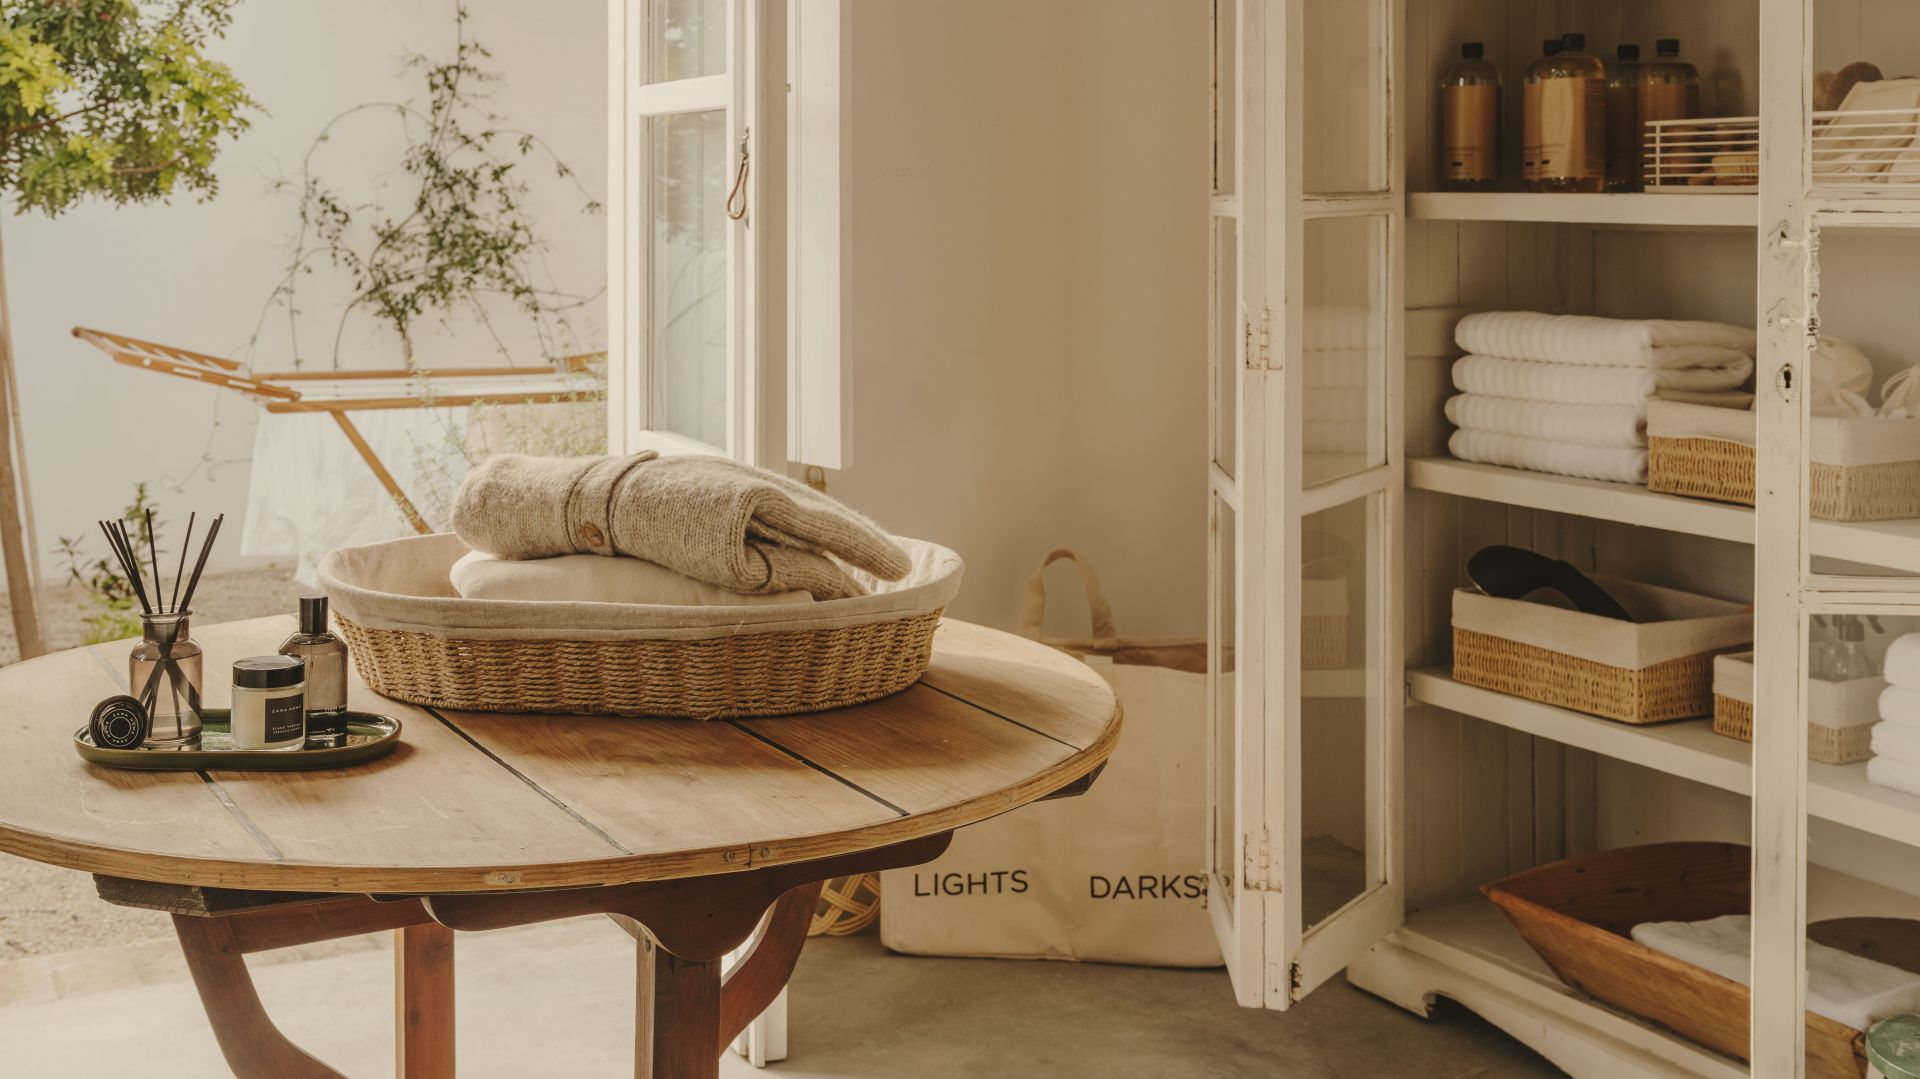 Zara Home Laundry collection. Fot. Zara Home